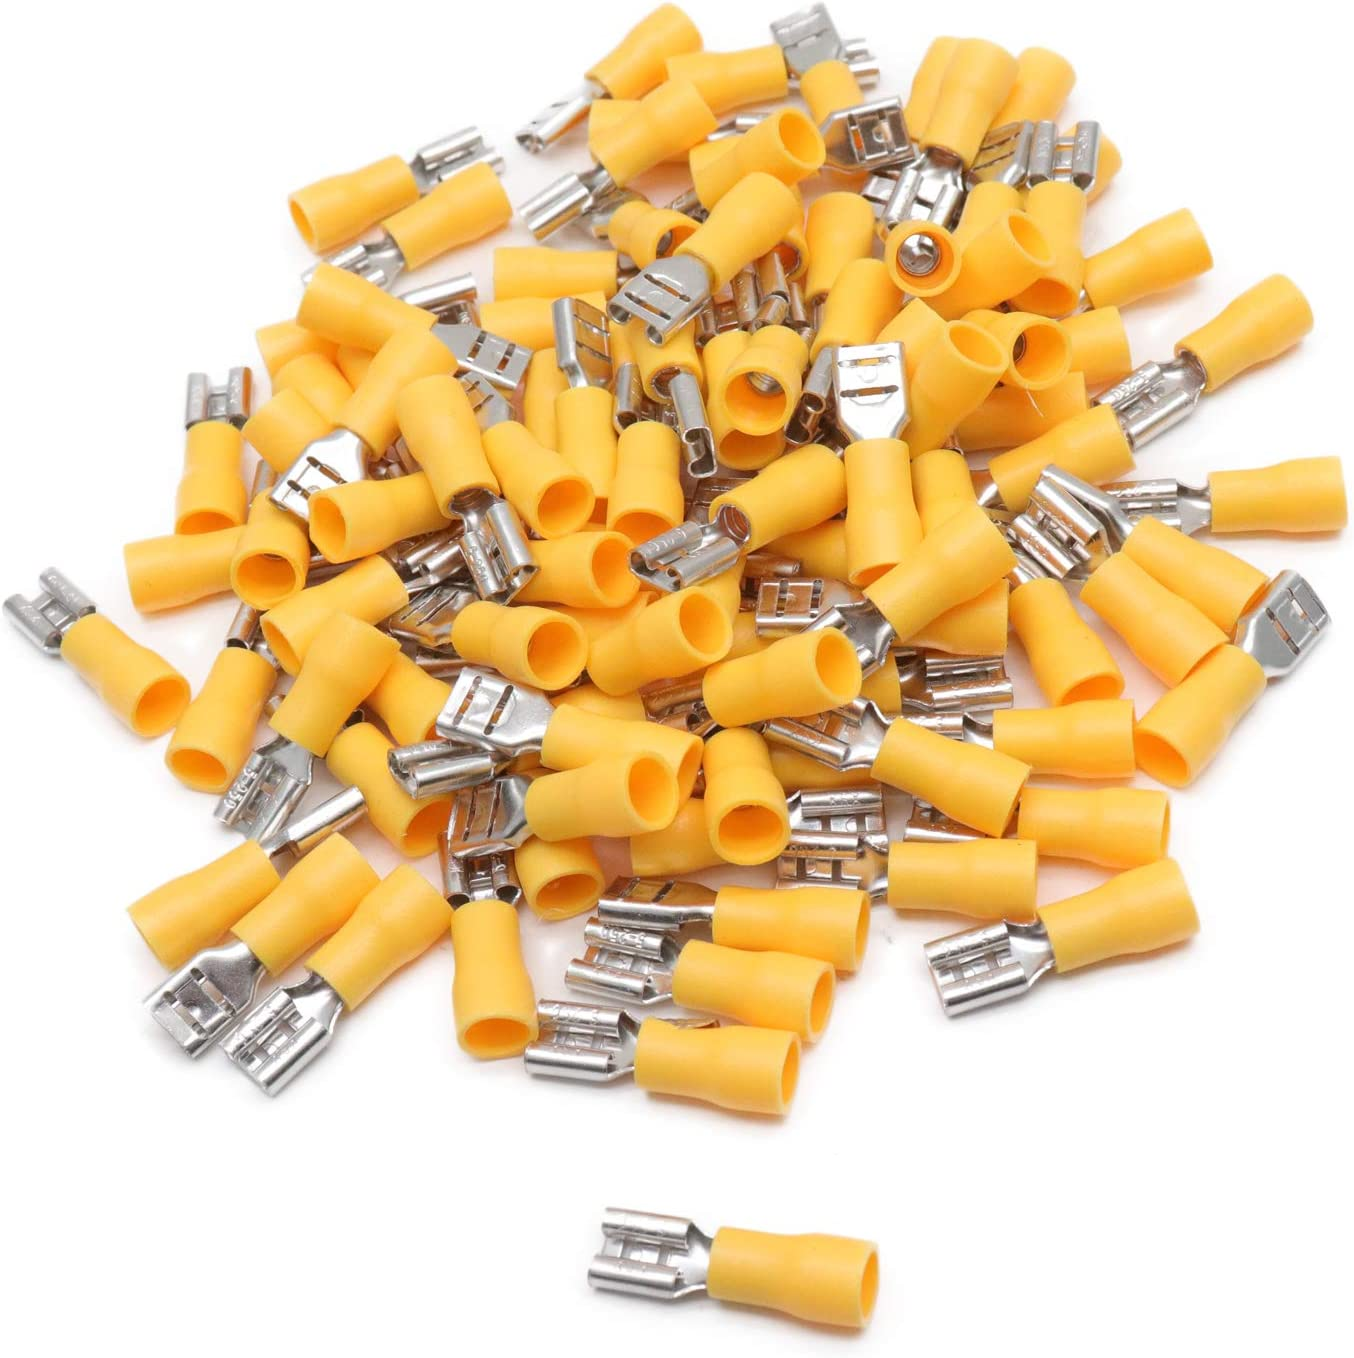 6.3mm Crimp Terminals Tab Male YELLOW and Fully Insulated Female Spade